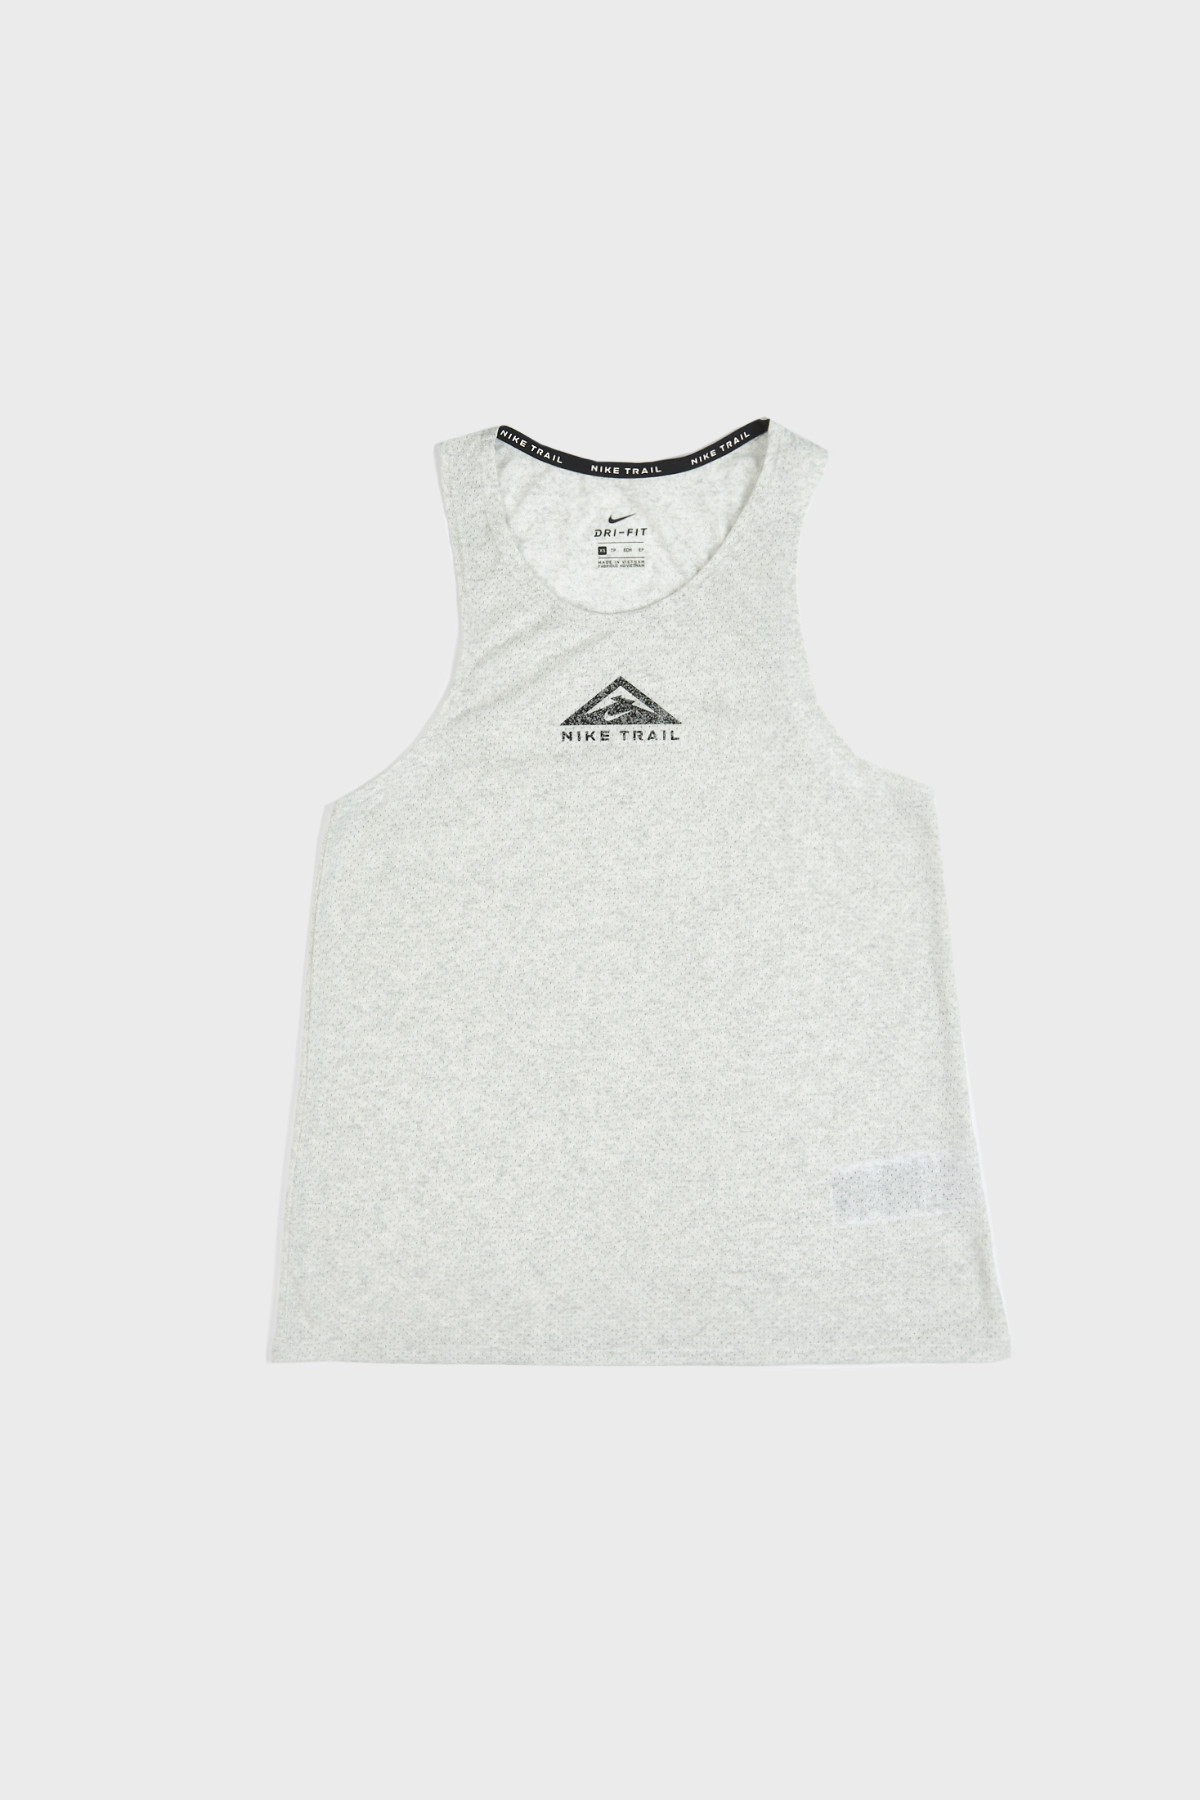 NIKE - W Nike City Sleek Tank - BROUILLARD